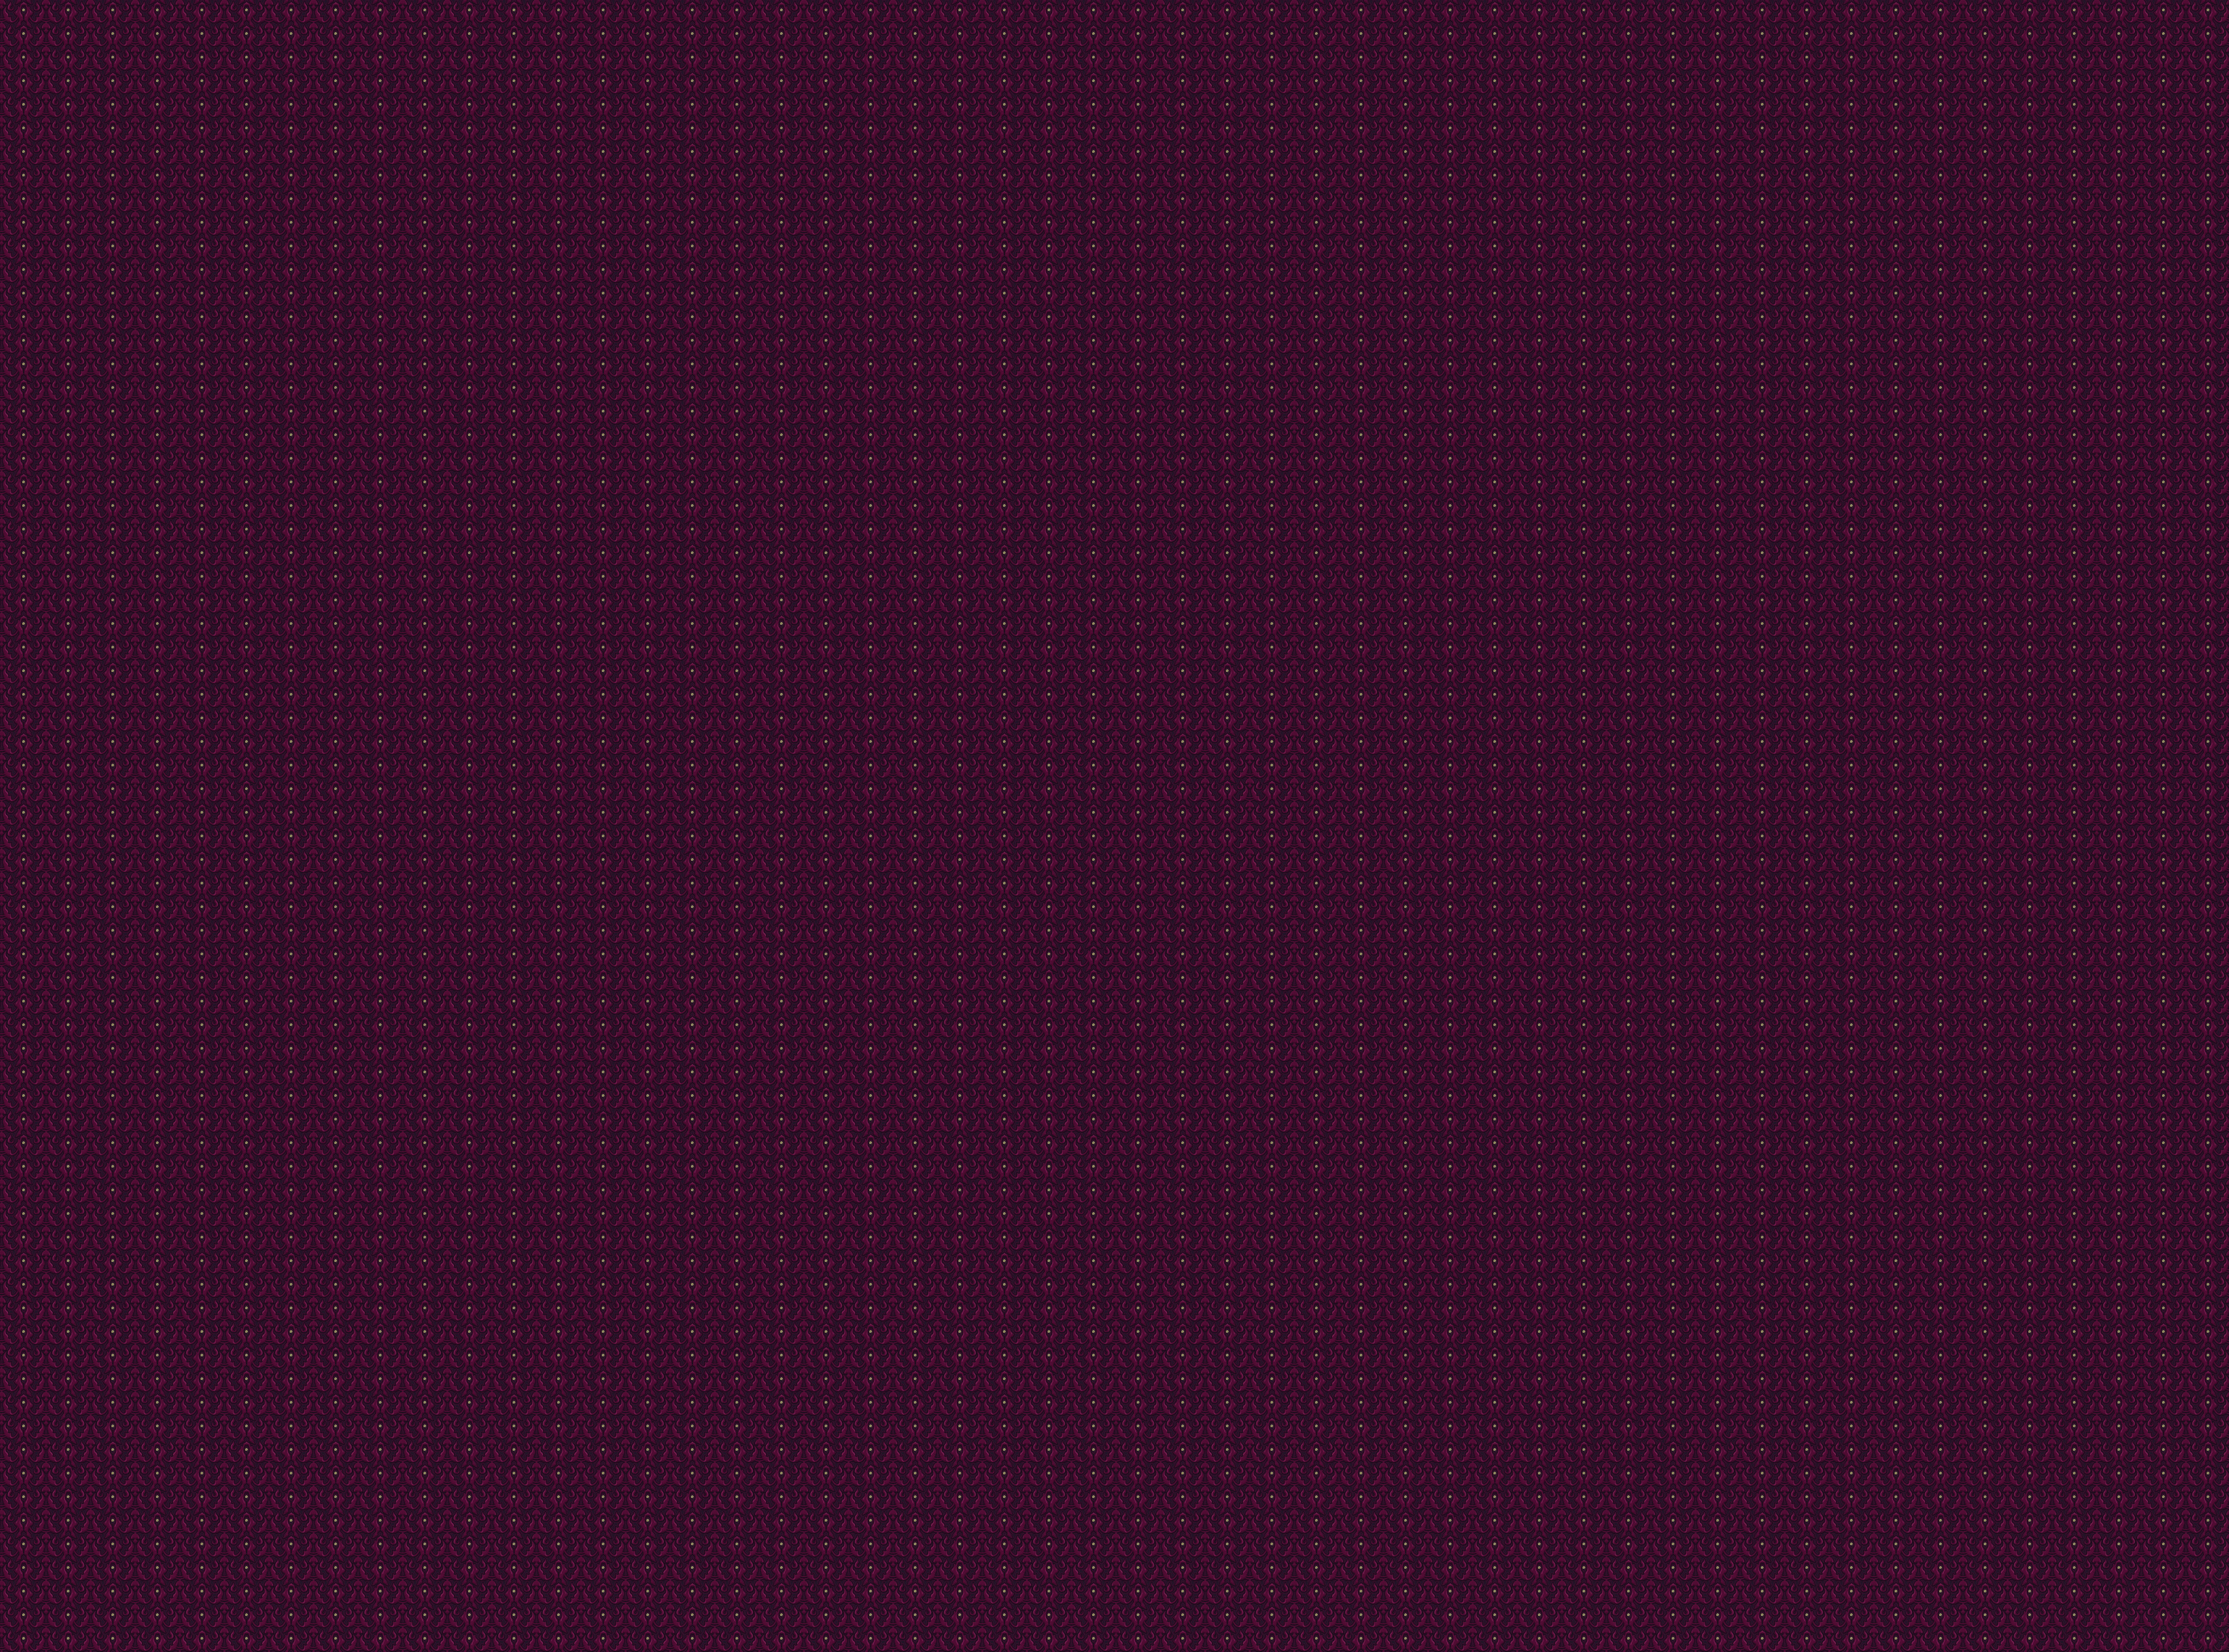 Go Back Images For Dark Purple Wallpaper Texture 3400x2520